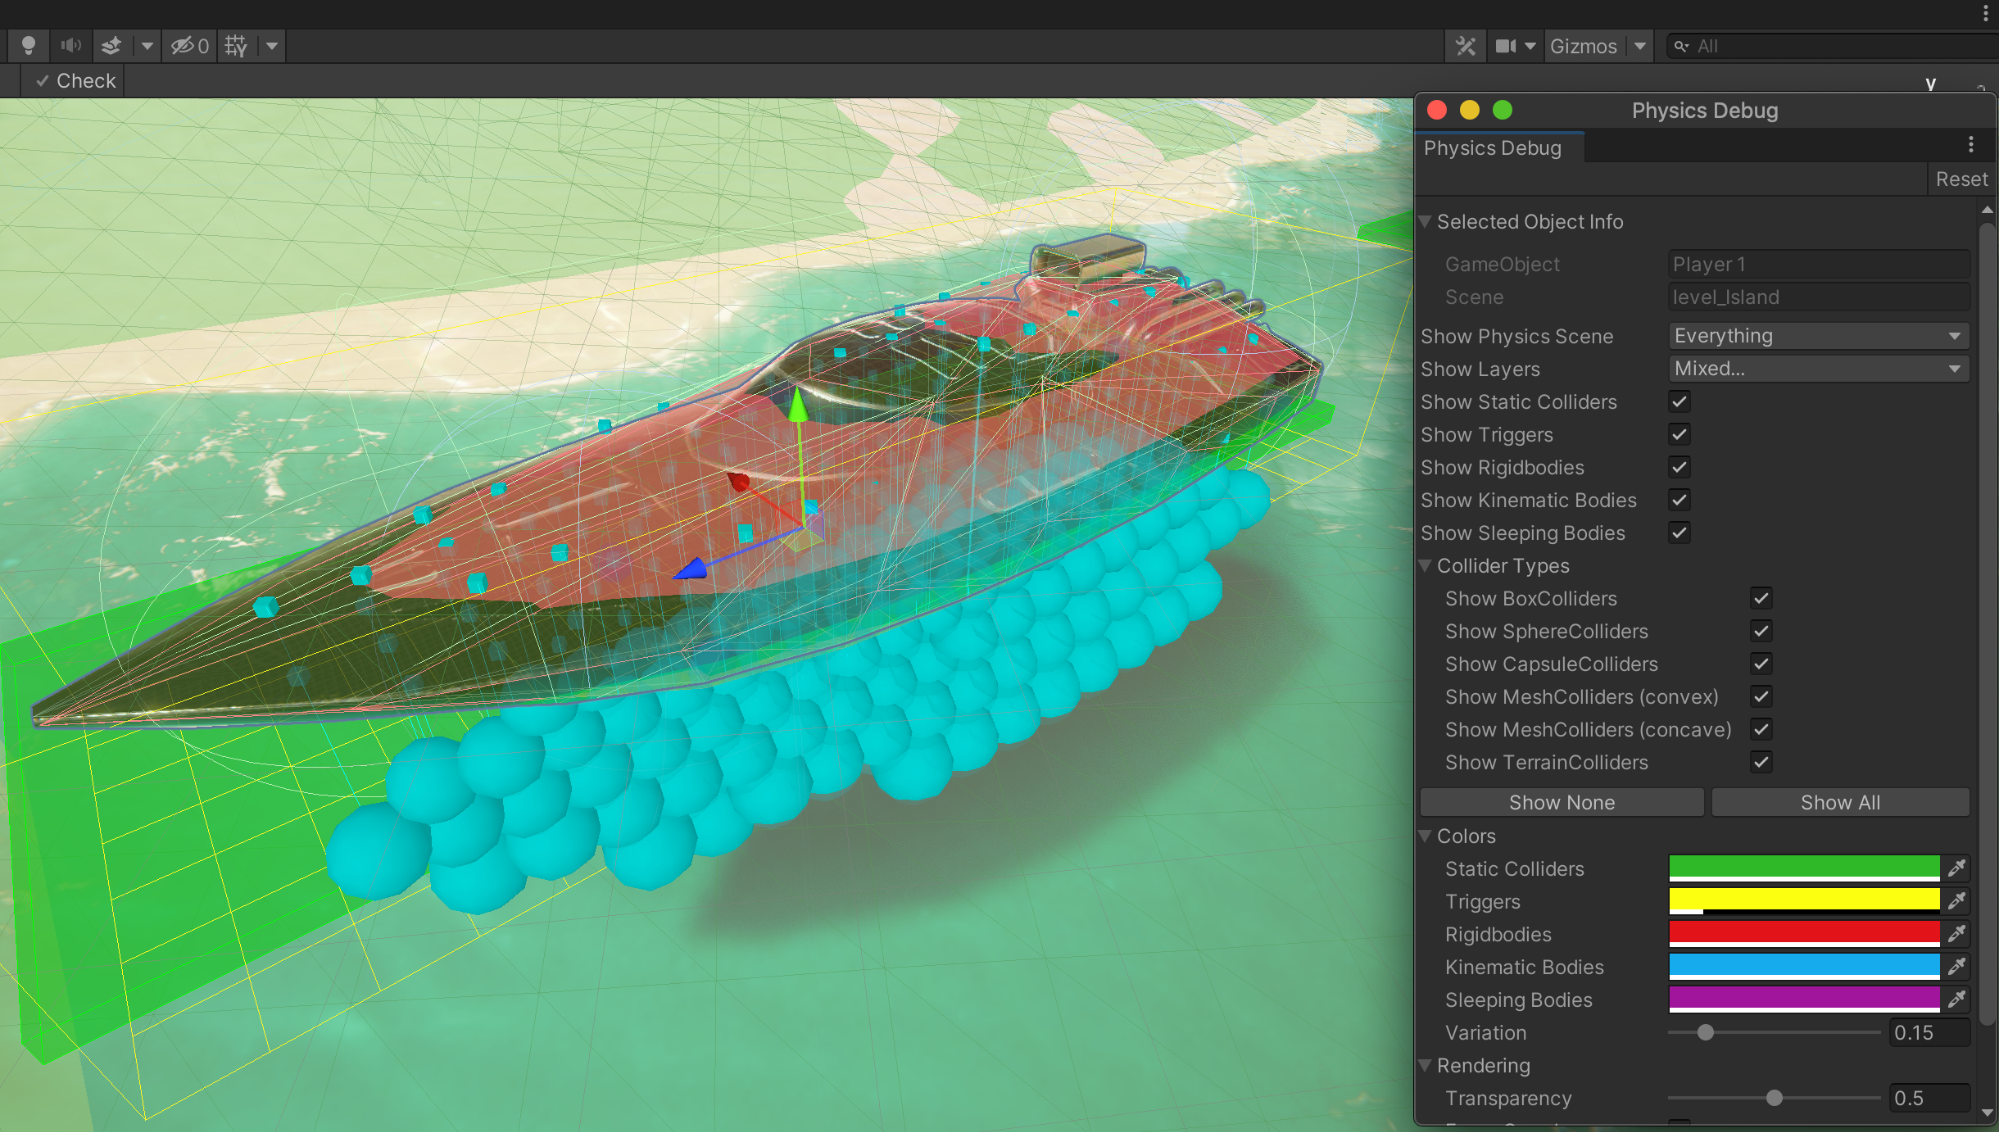 Image of an orange boat with a mesh overlay and a blue shadow inside the physics debugger dialog box.